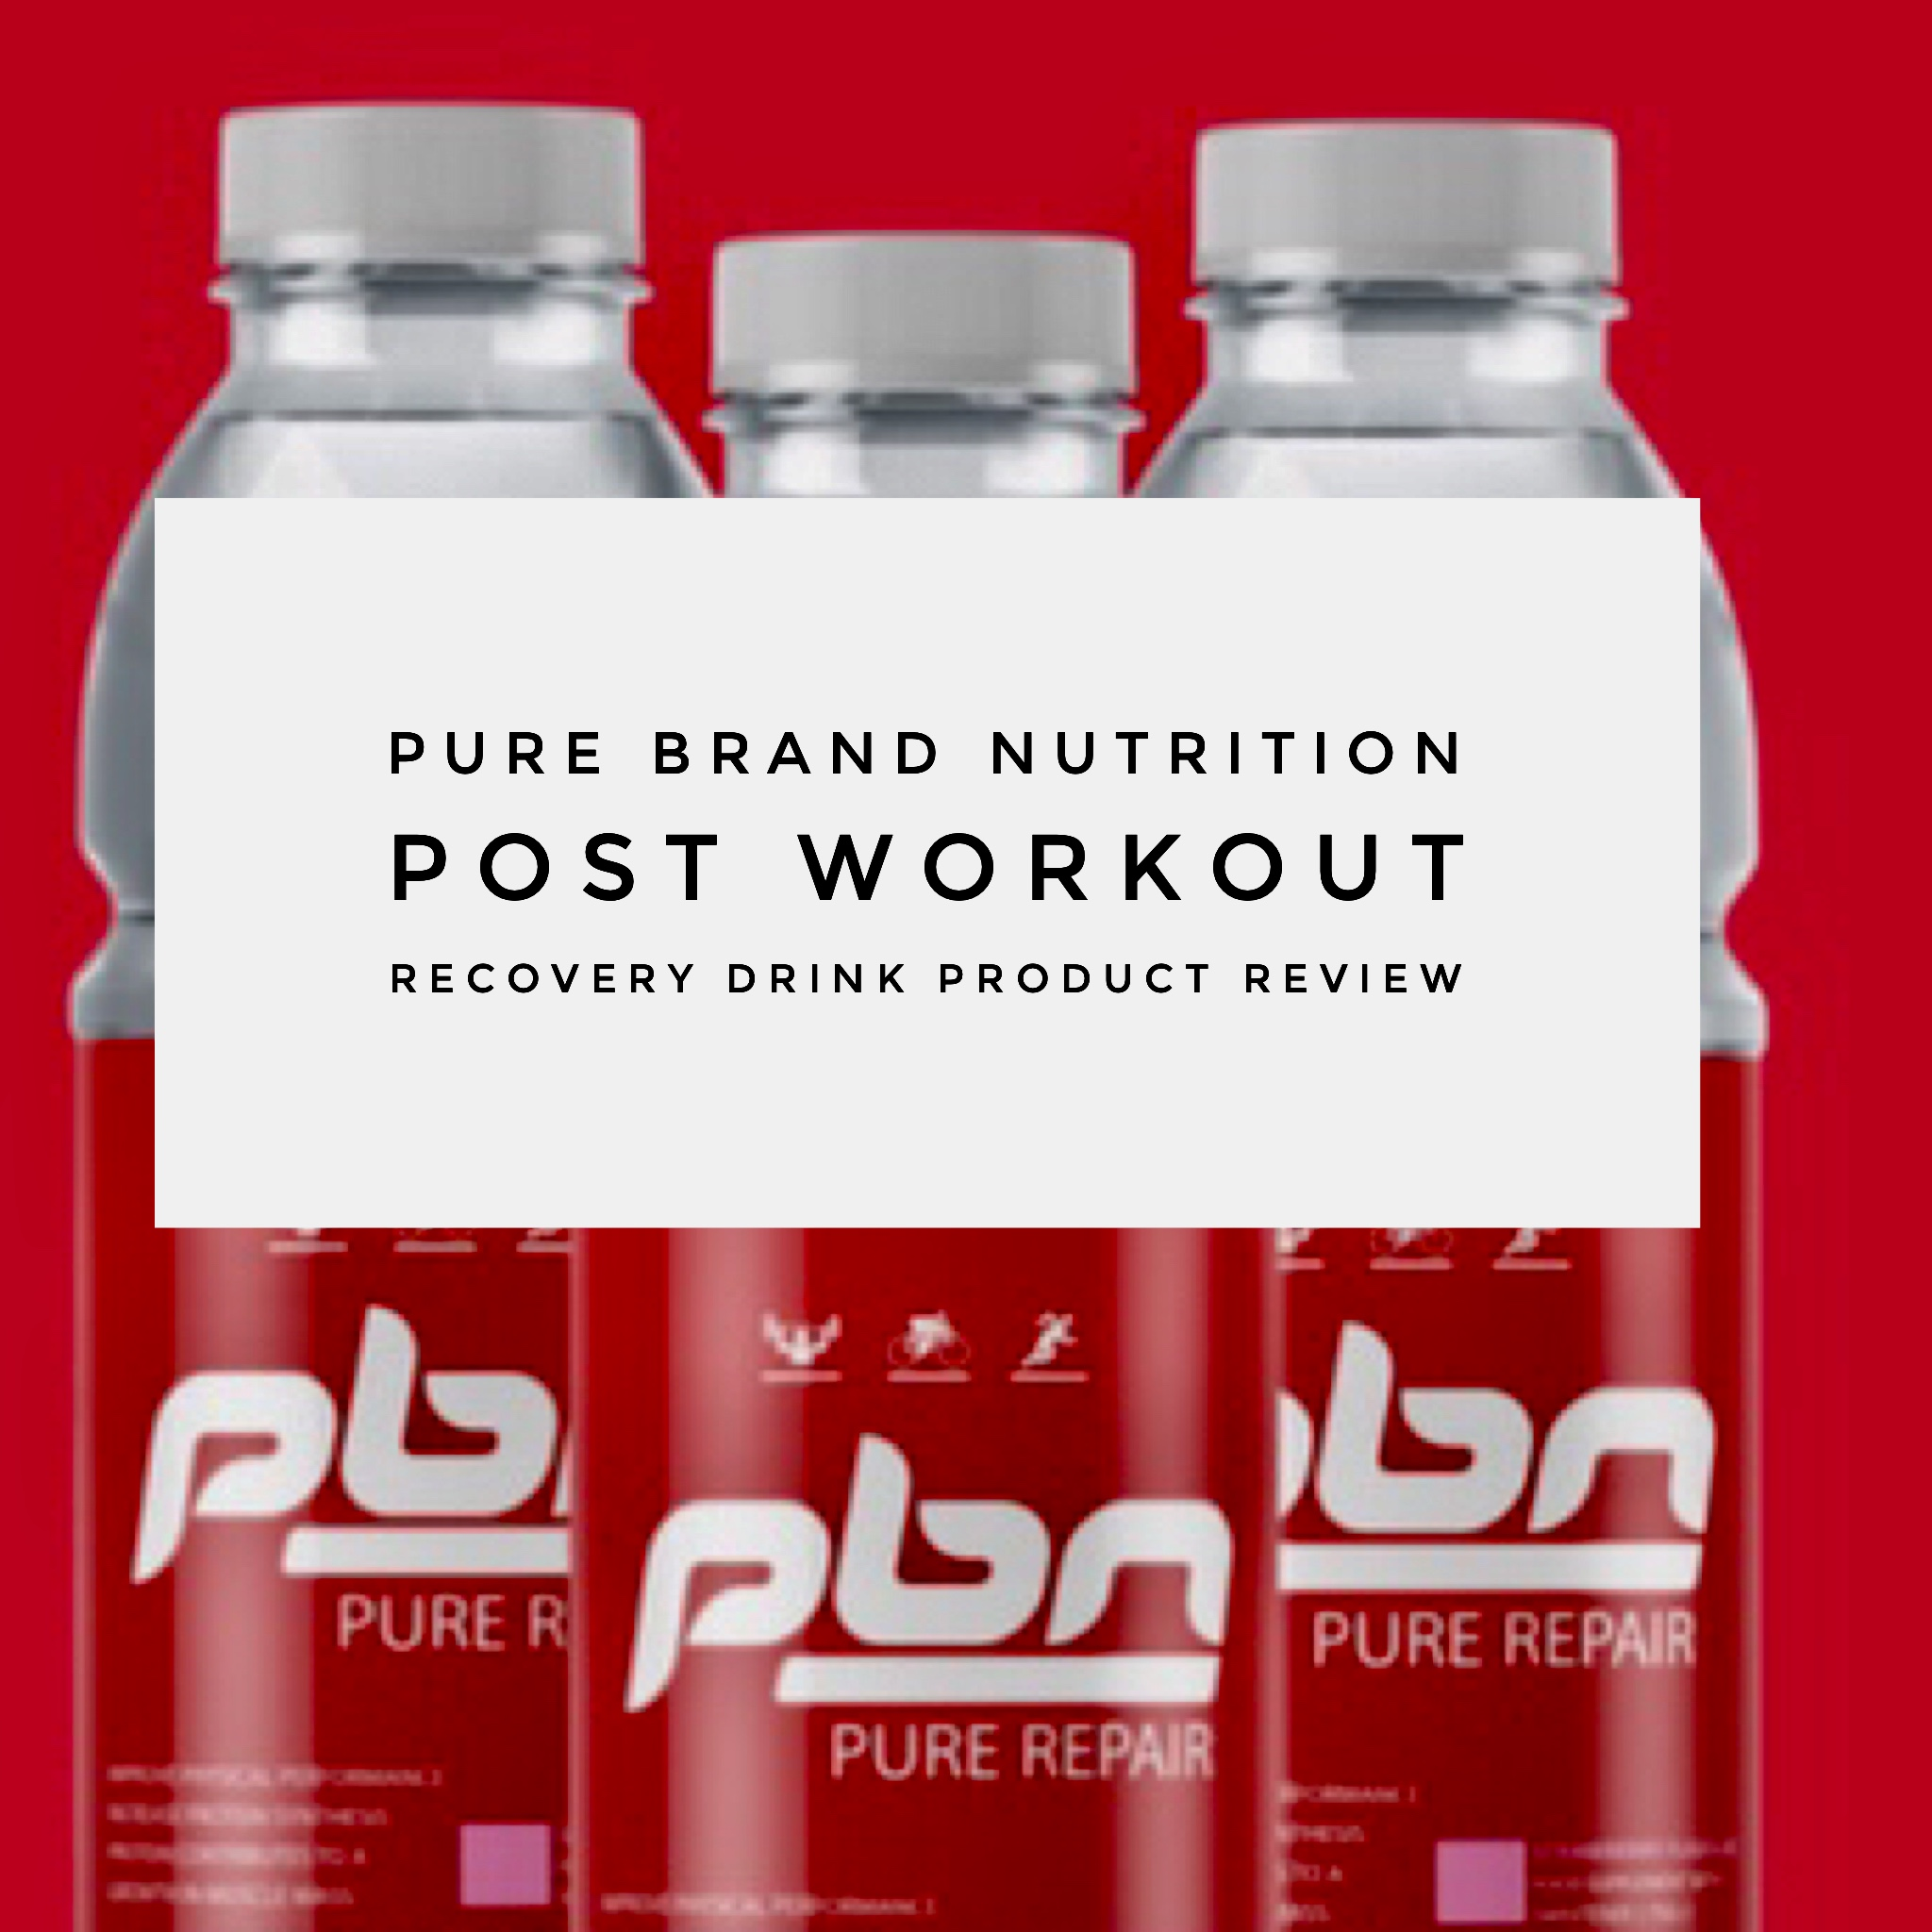 Pure Brand Nutrition Product Review